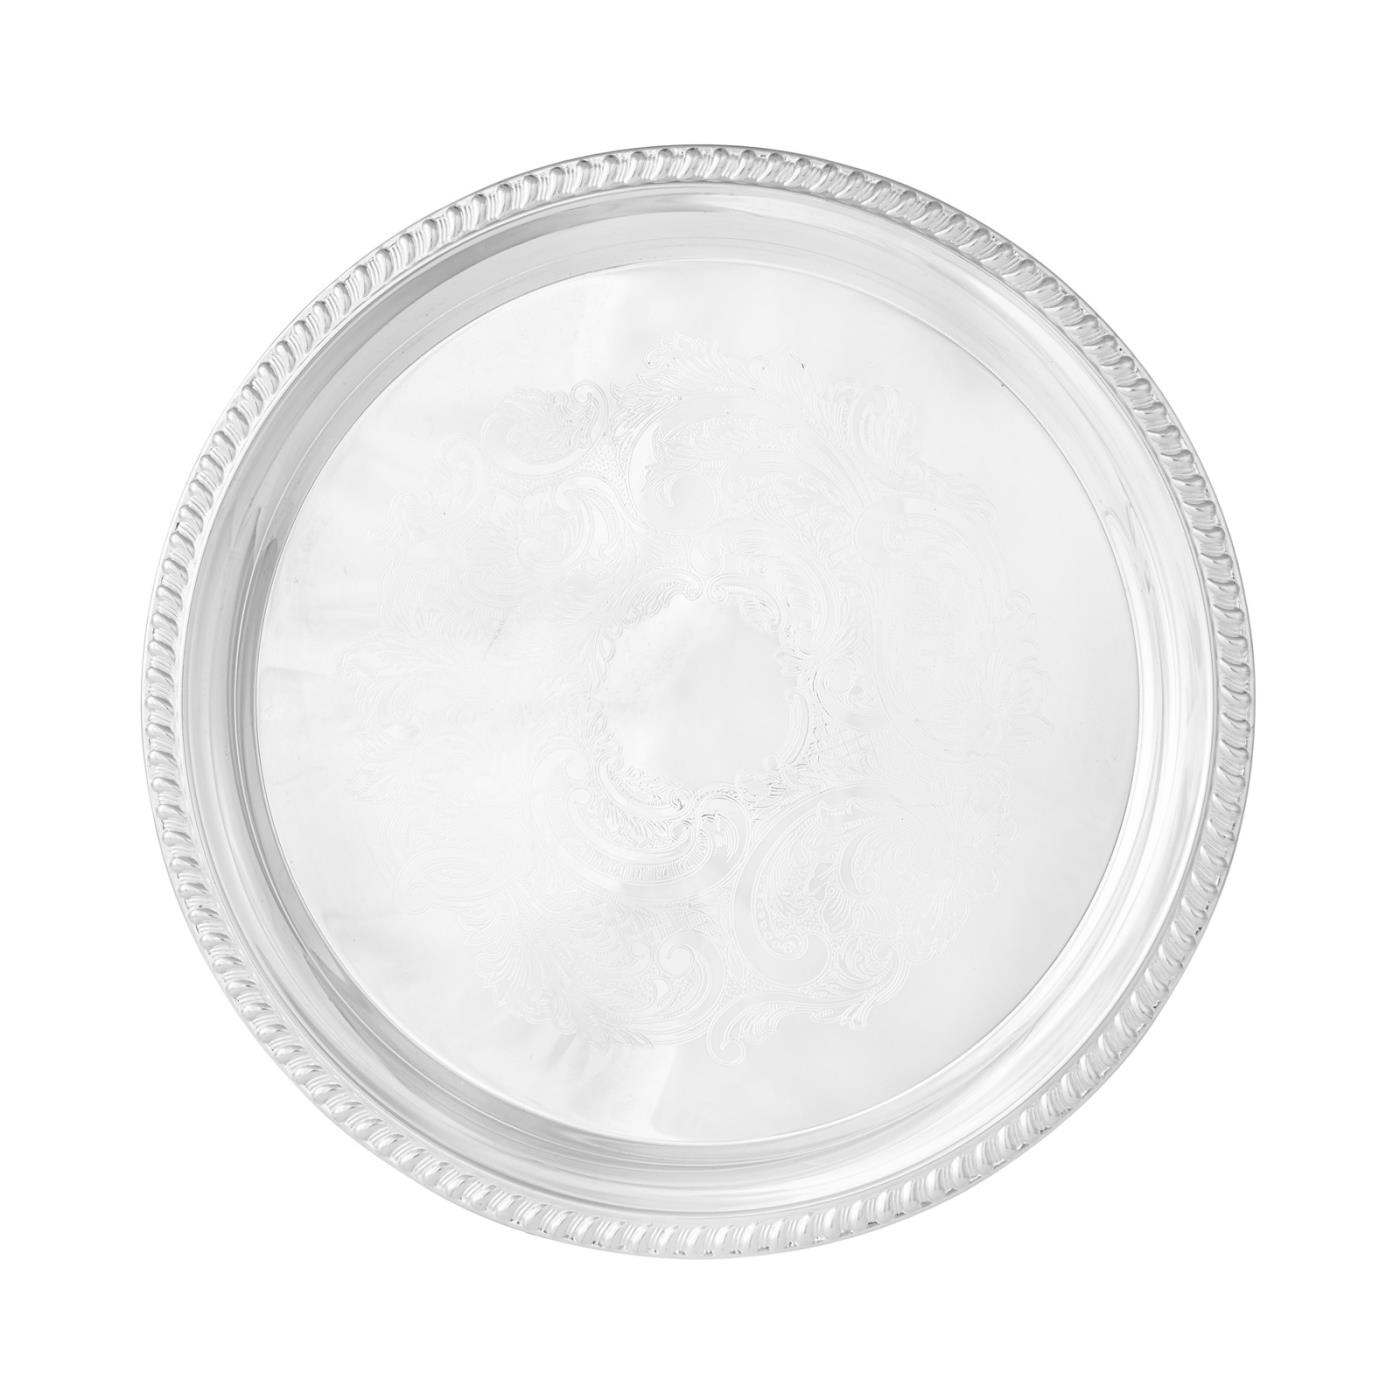 Silver Round Tray - 14""